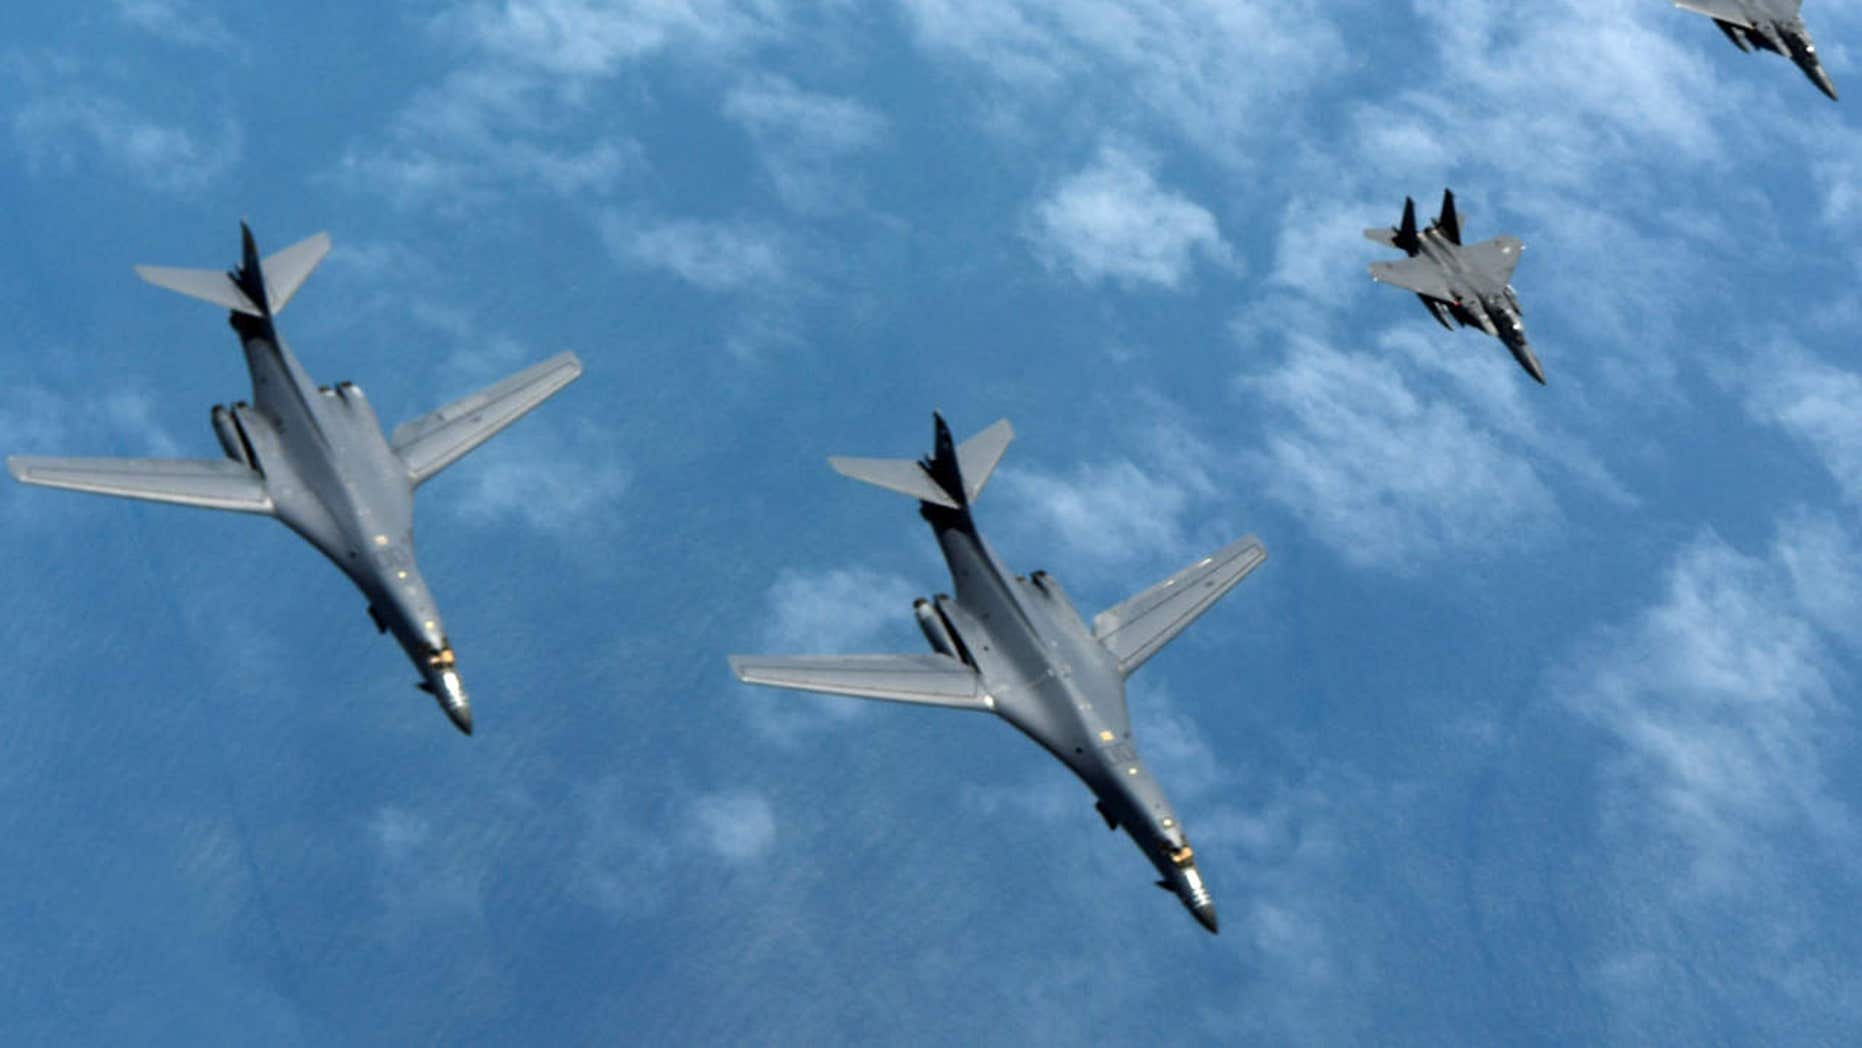 Two U.S. Air Force B-1B Lancers assigned to the 9th Expeditionary Bomb Squadron fly a 10-hour mission from Andersen Air Force Base, Guam, with two South Korean air force F-15s in the vicinity of the Korean peninsula.